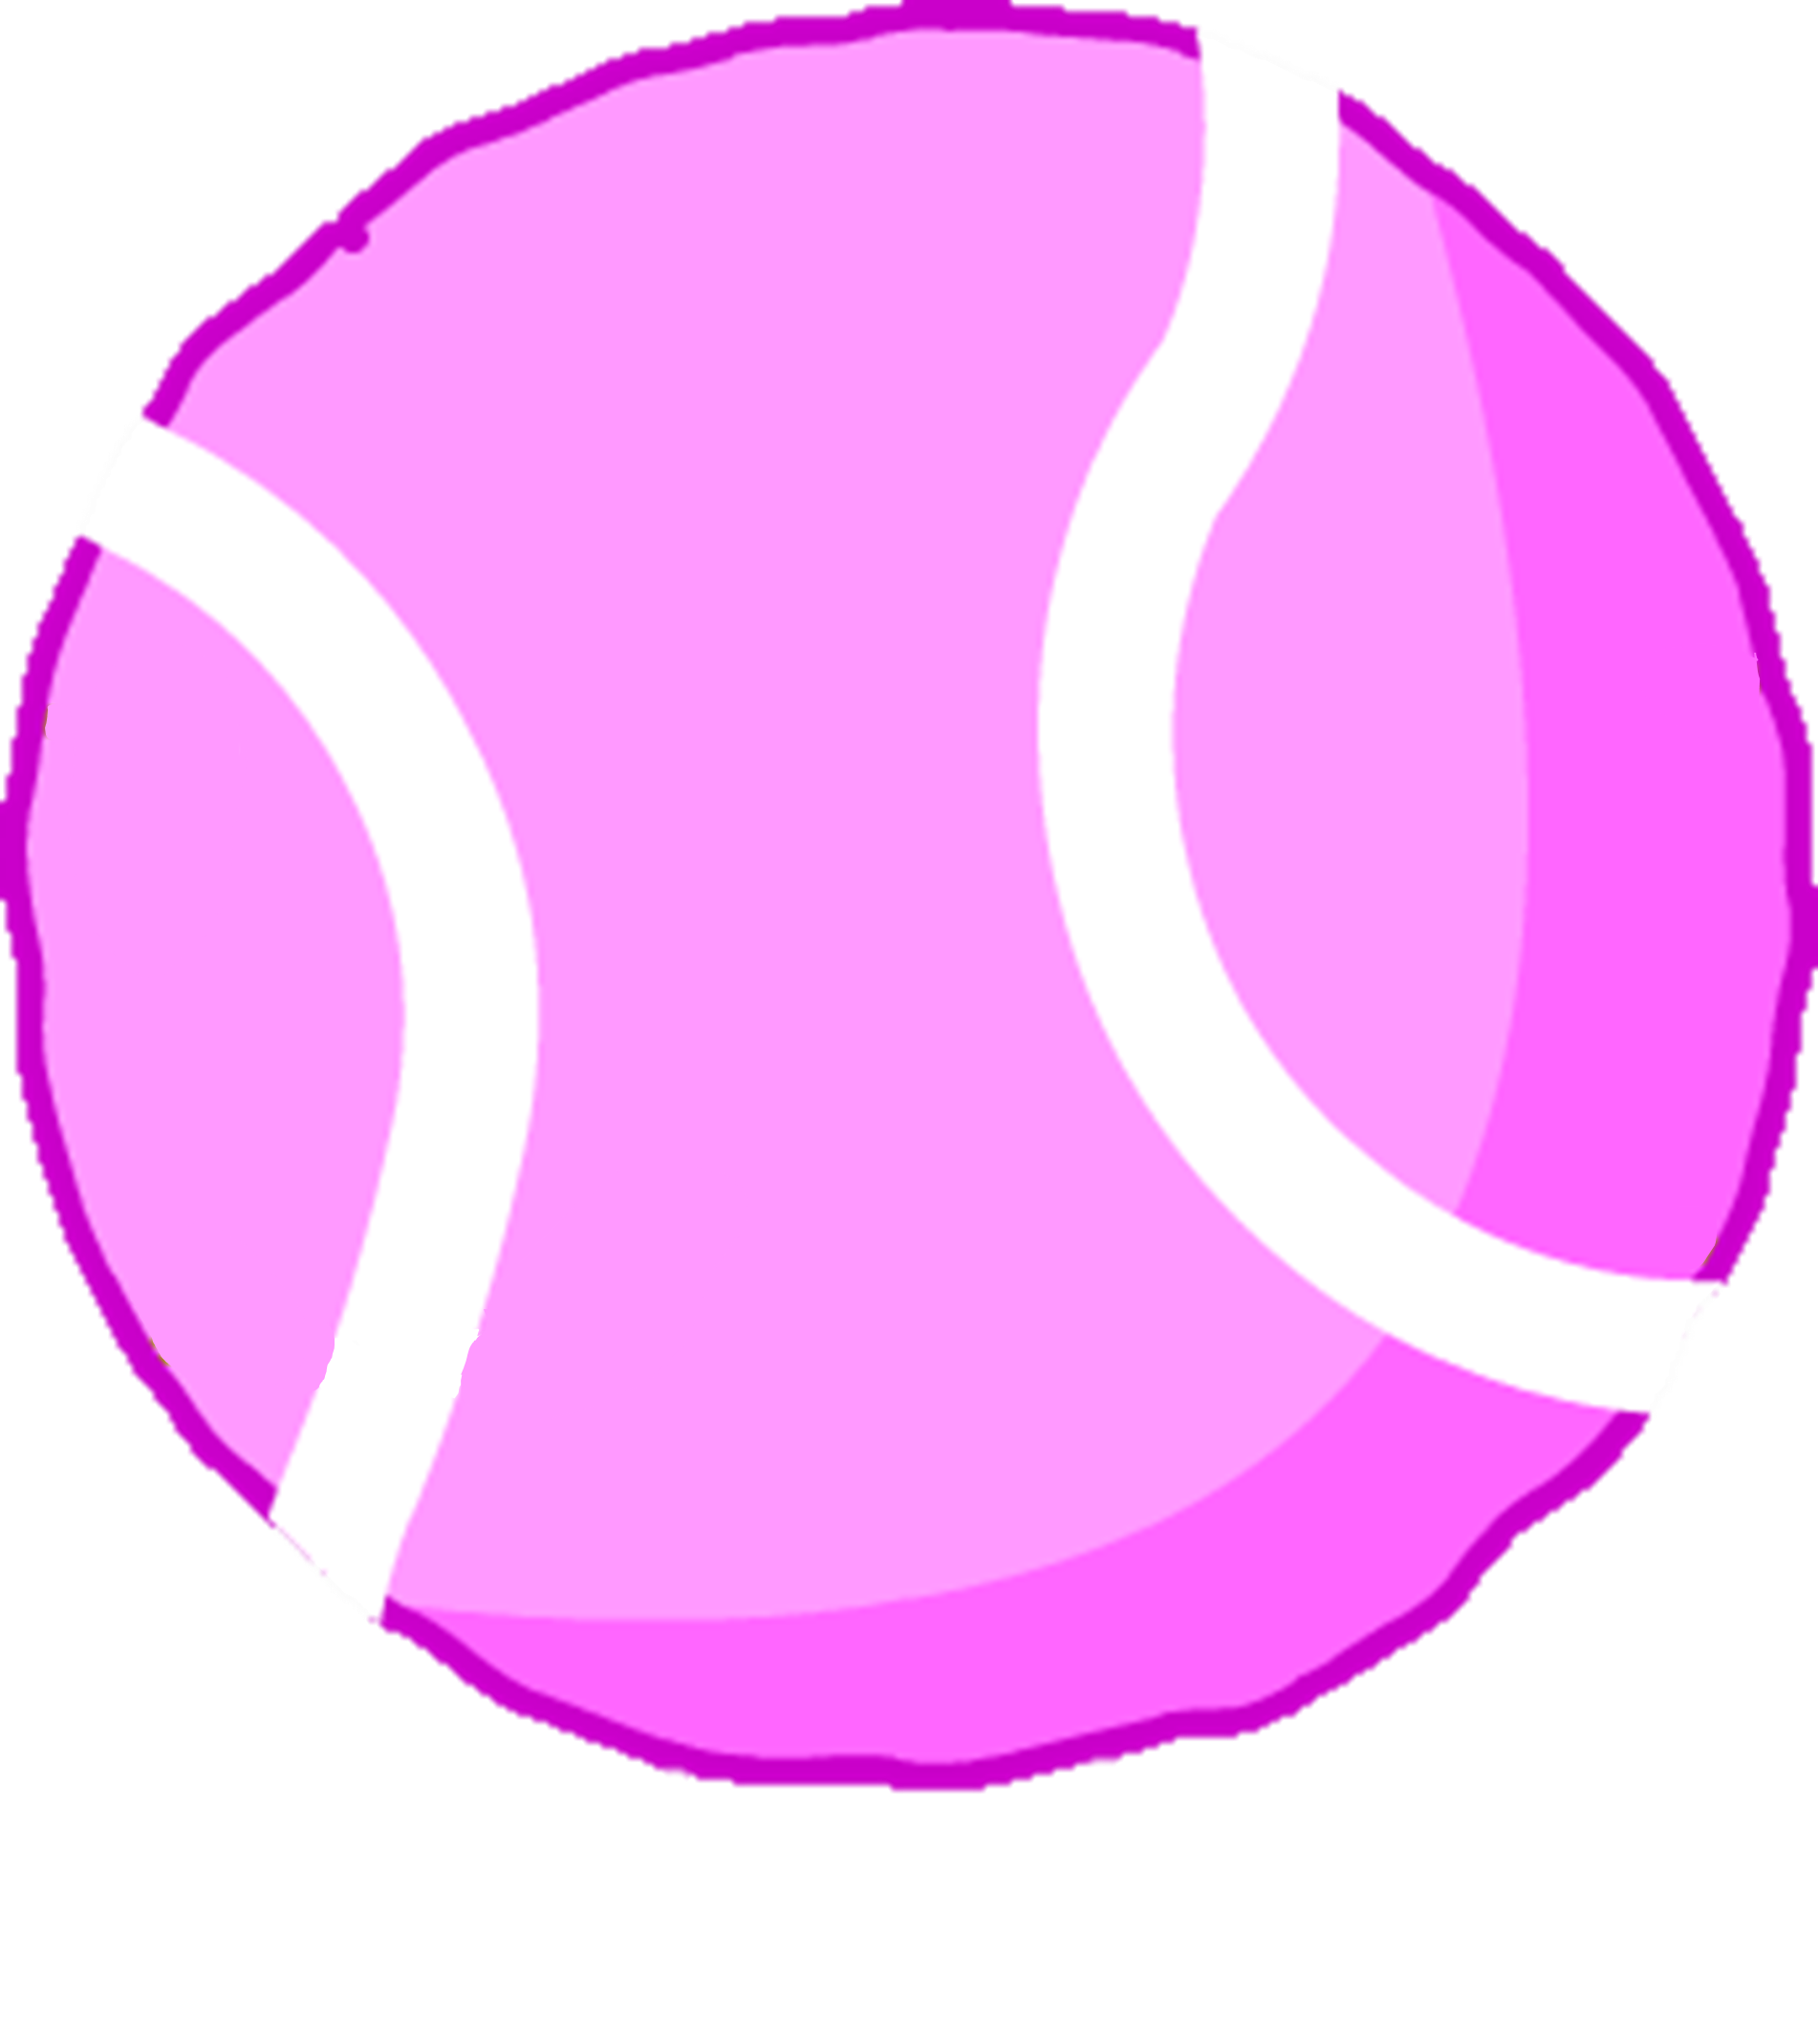 Image pink tennis ball assetg battle for dream island wiki thumbnail for version as of 1912 january 29 2018 buycottarizona